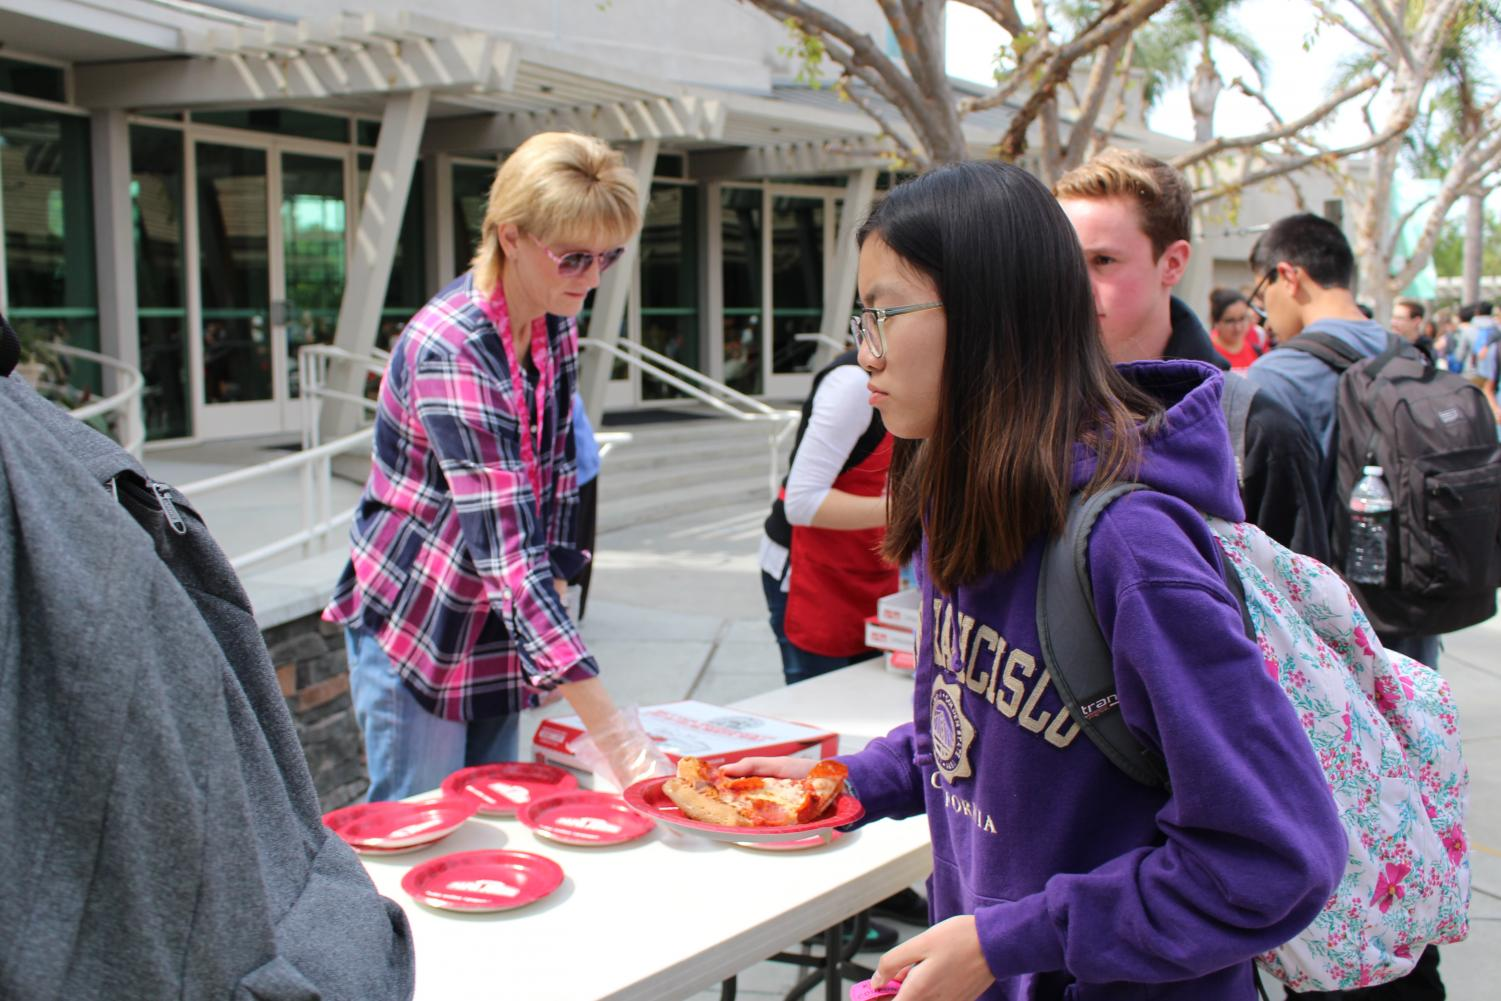 """Pizza Friday"" staff members hand out tickets and pass out pizza to students."